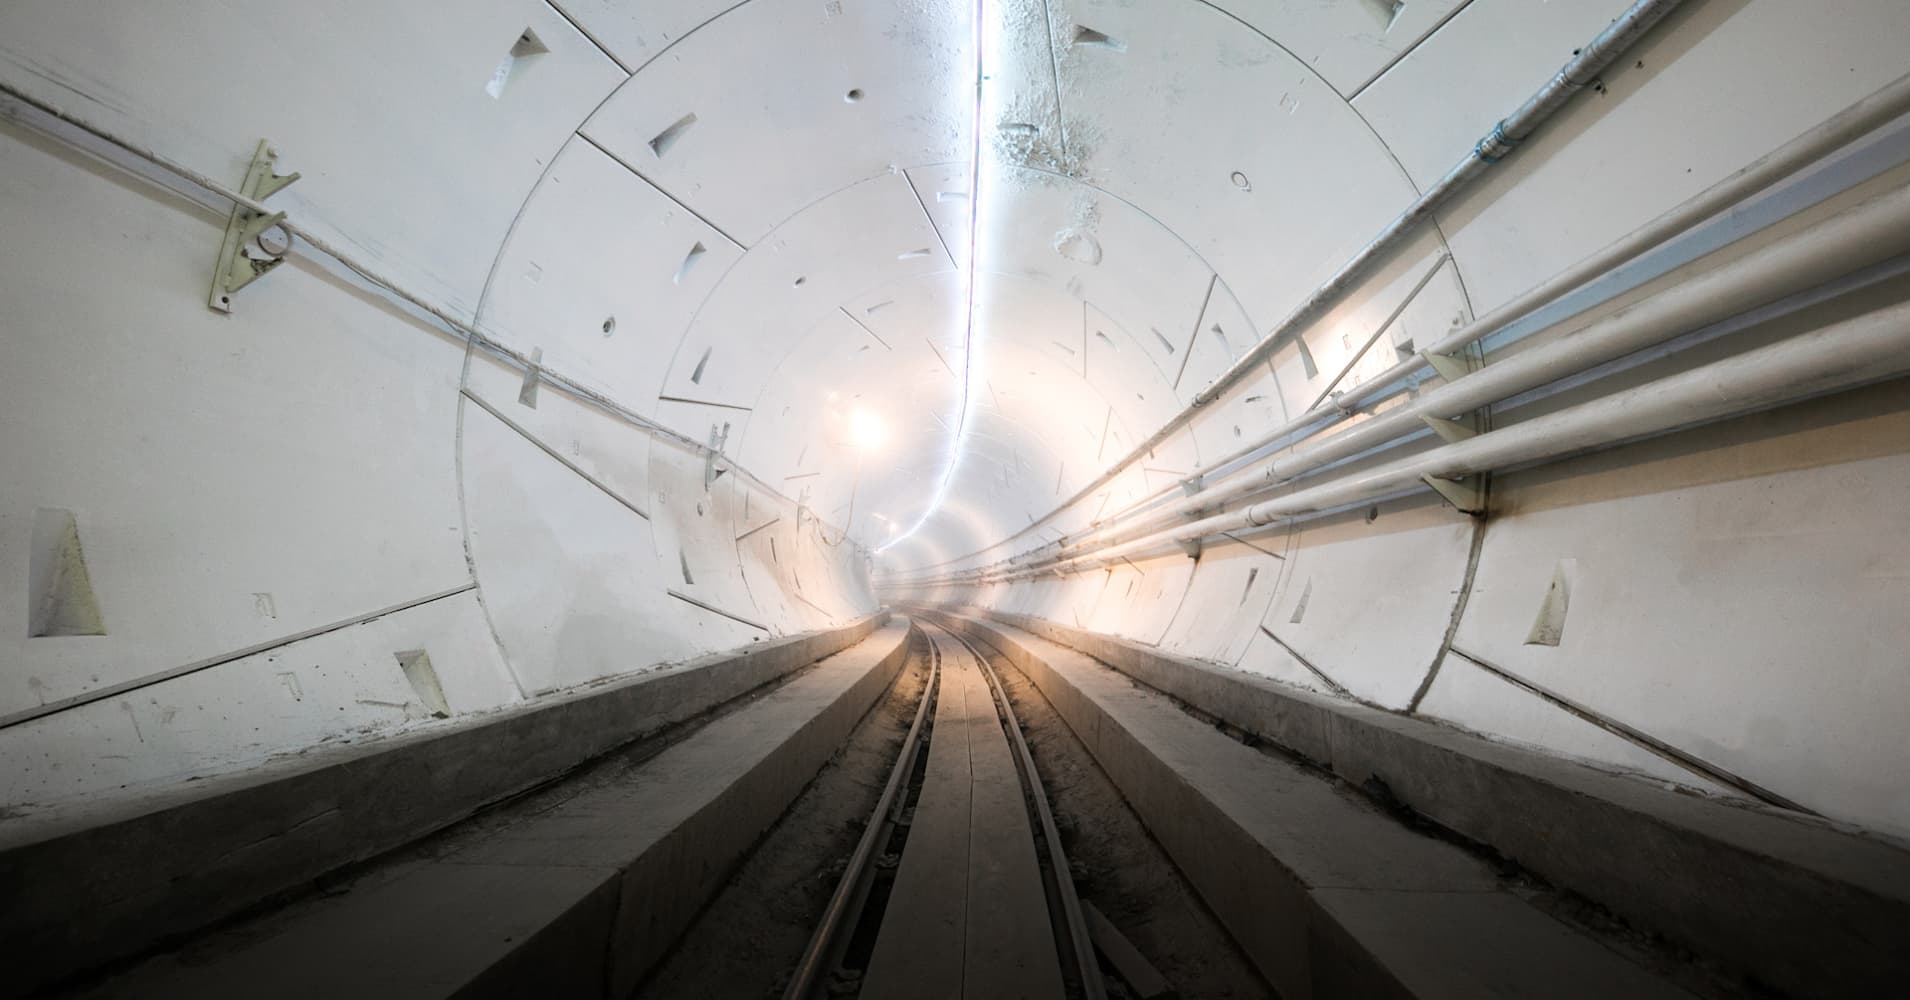 Elon Musk unveils Boring Company tunnel, promising a new era in high-speed transportation